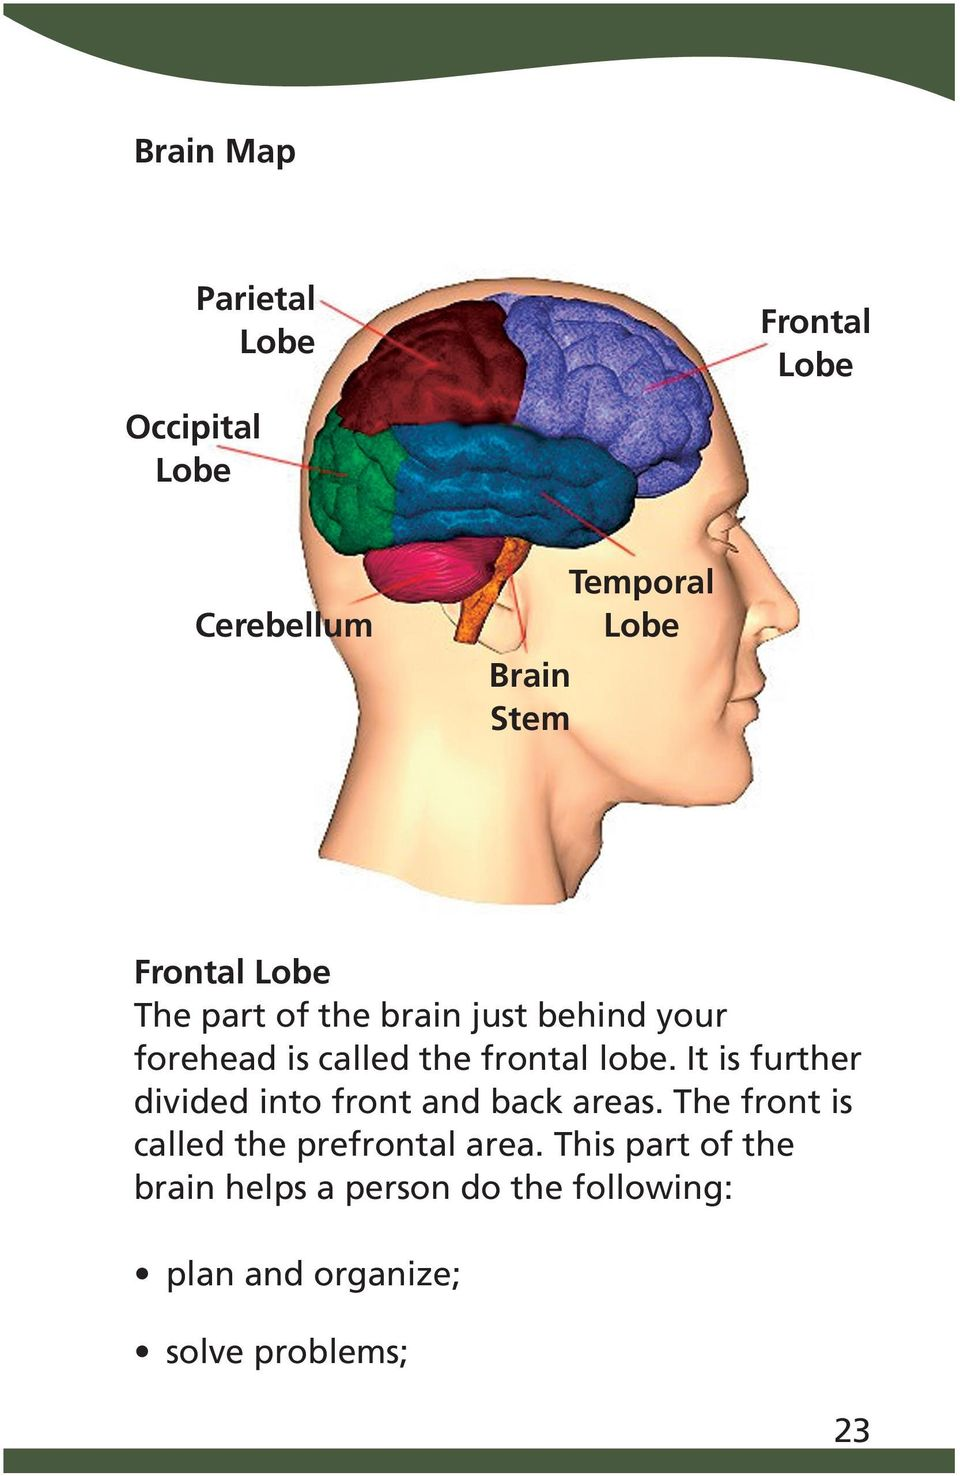 It is further divided into front and back areas. The front is called the prefrontal area.